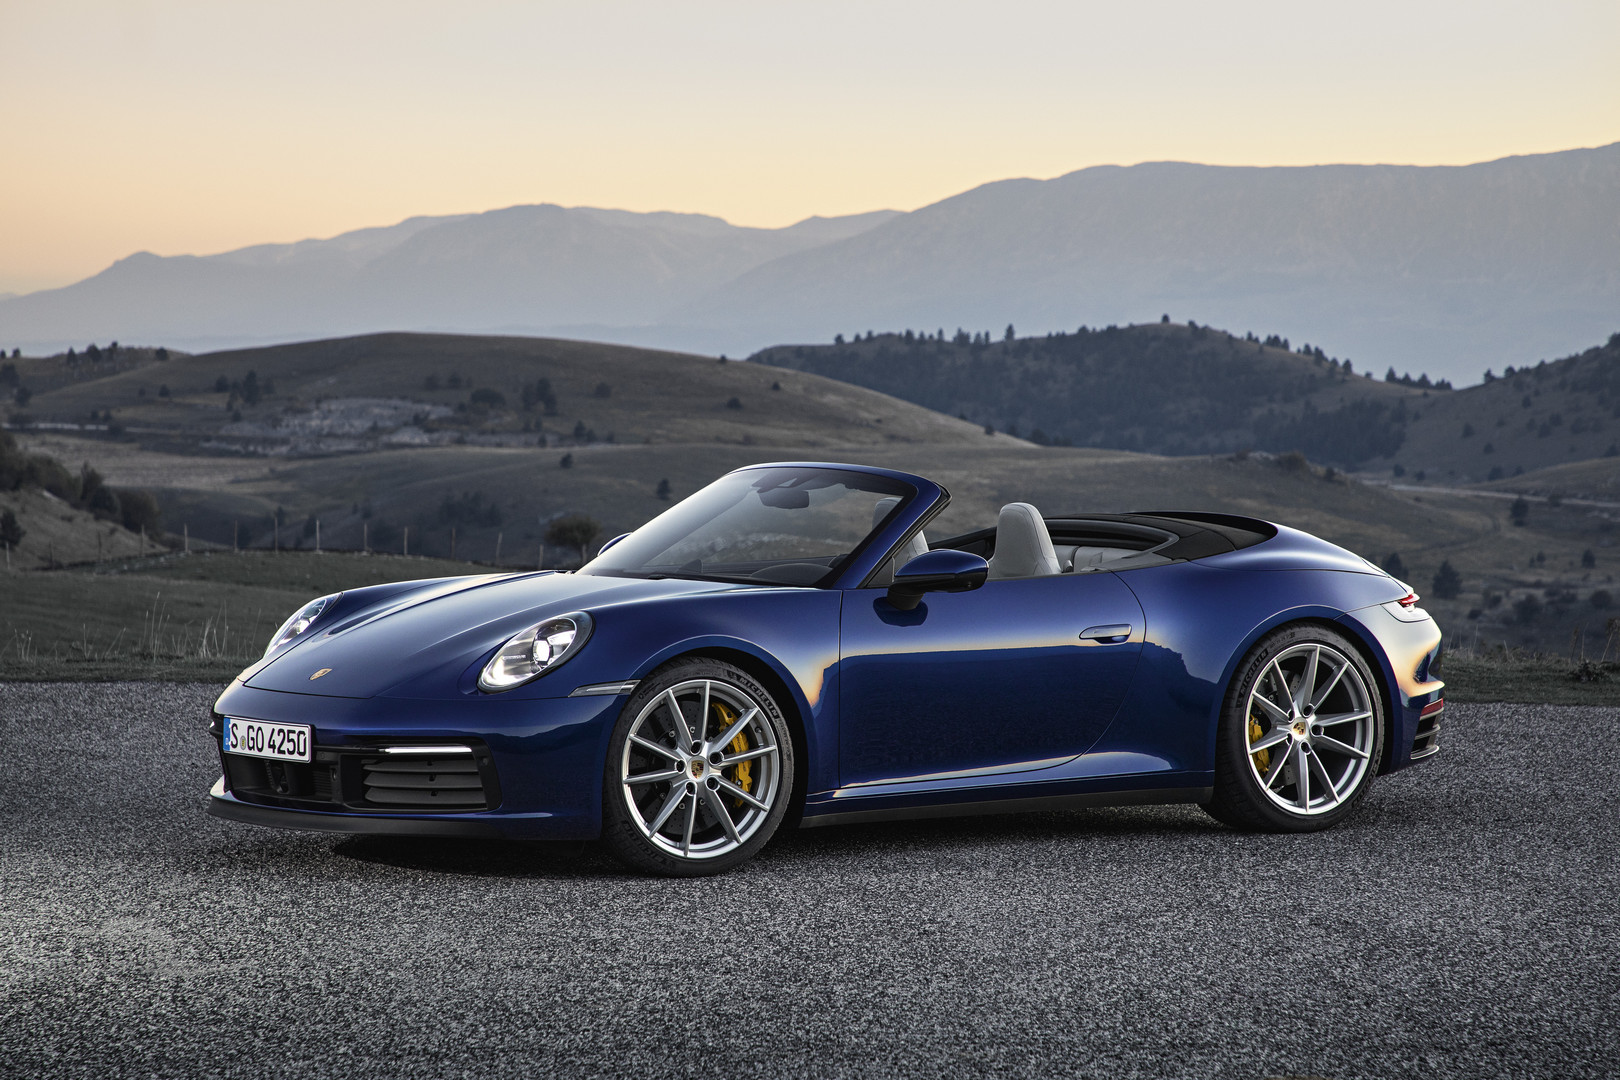 2020 Porsche 911 Carrera Cabriolet Officially Revealed